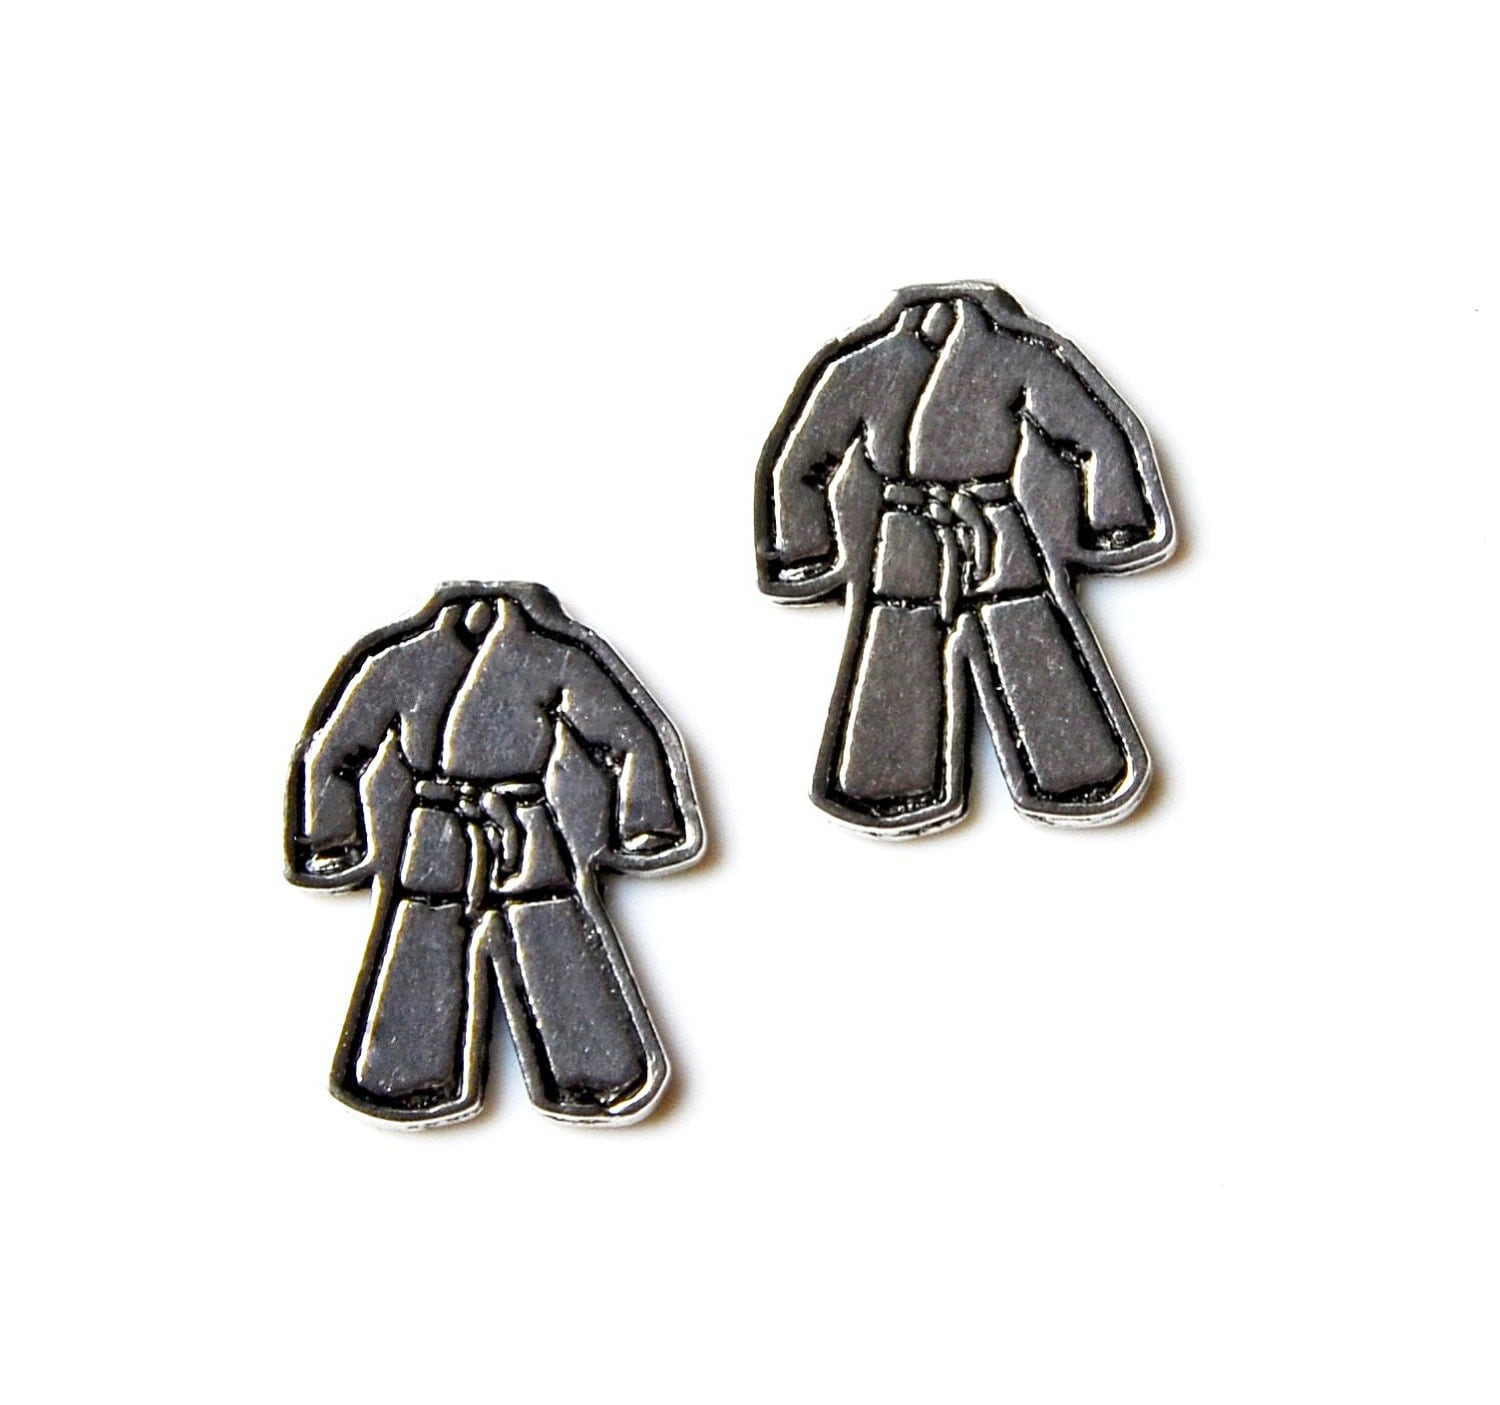 Martial Arts Cufflinks Gifts For Men Anniversary Gift. Resume Sites For Recruiters Template. Microsoft Word For Resume Template. Investment Proposal Template Word. Profile In Cv Sample Template. Welcome Letter For New Clients Template. Resume For Banking Jobs Template. Priority Mail Label 228 Template. Restaurant Hostess Resume Samples Template